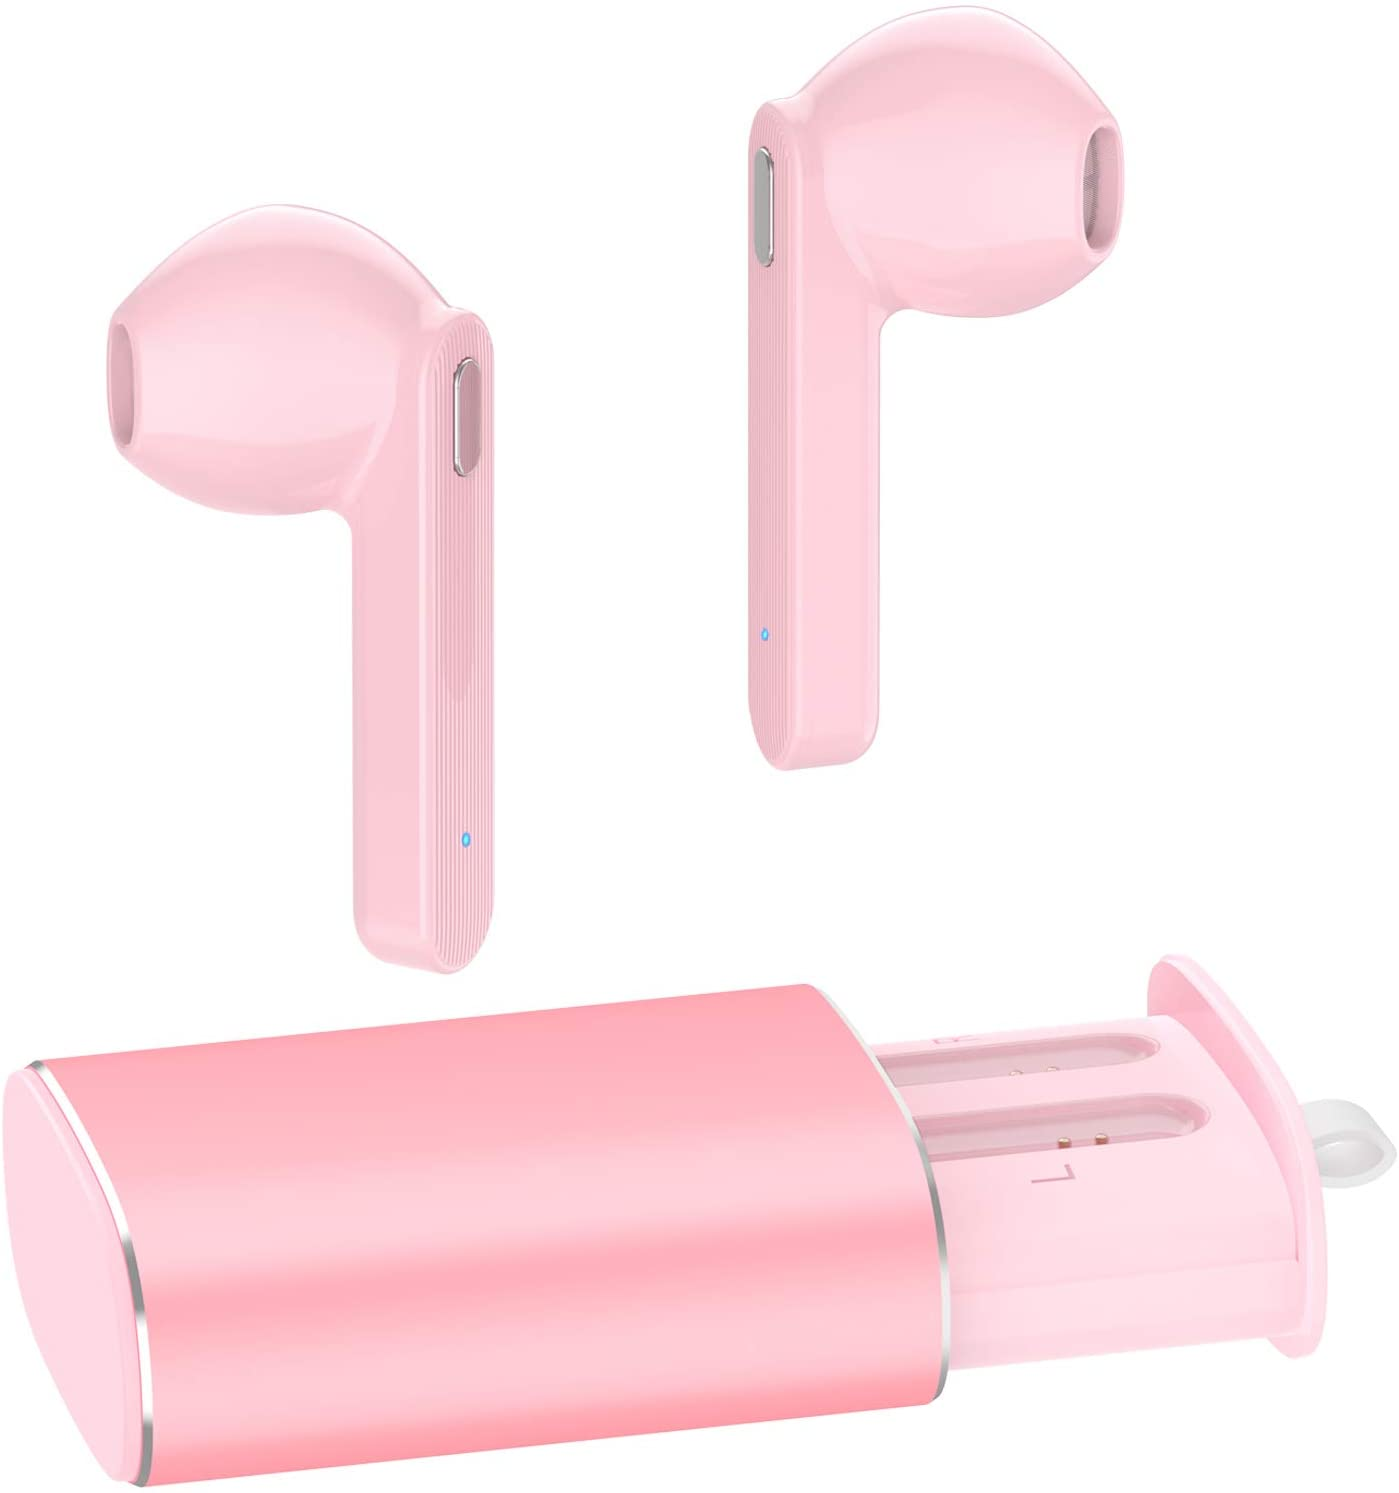 Wireless Earbuds, AUGYMER Bluetooth 5.0 True Earphones Auto Pairing Bluetooth Headphones TWS Stereo HiFi Headphones for Running Sports in-Ear with Type-C Charging Case Built-in Mic Headset (Pink)